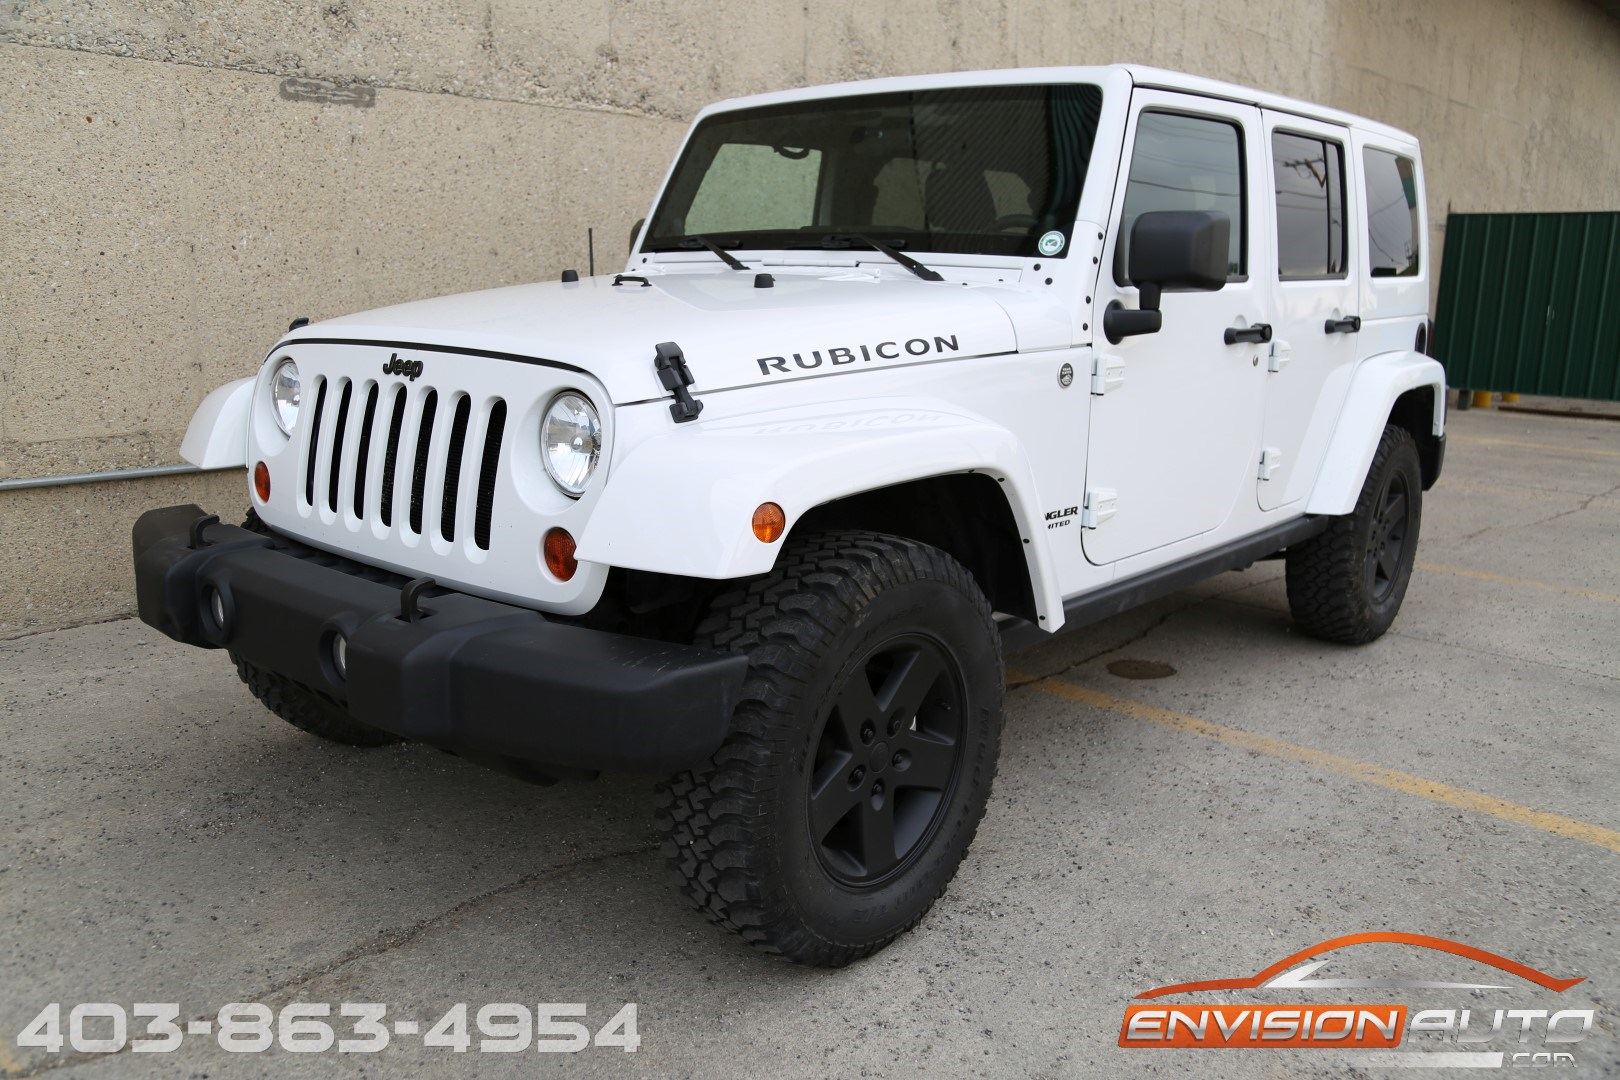 2012 jeep wrangler unlimited rubicon 4 x 4 6 speed manual envision auto. Black Bedroom Furniture Sets. Home Design Ideas